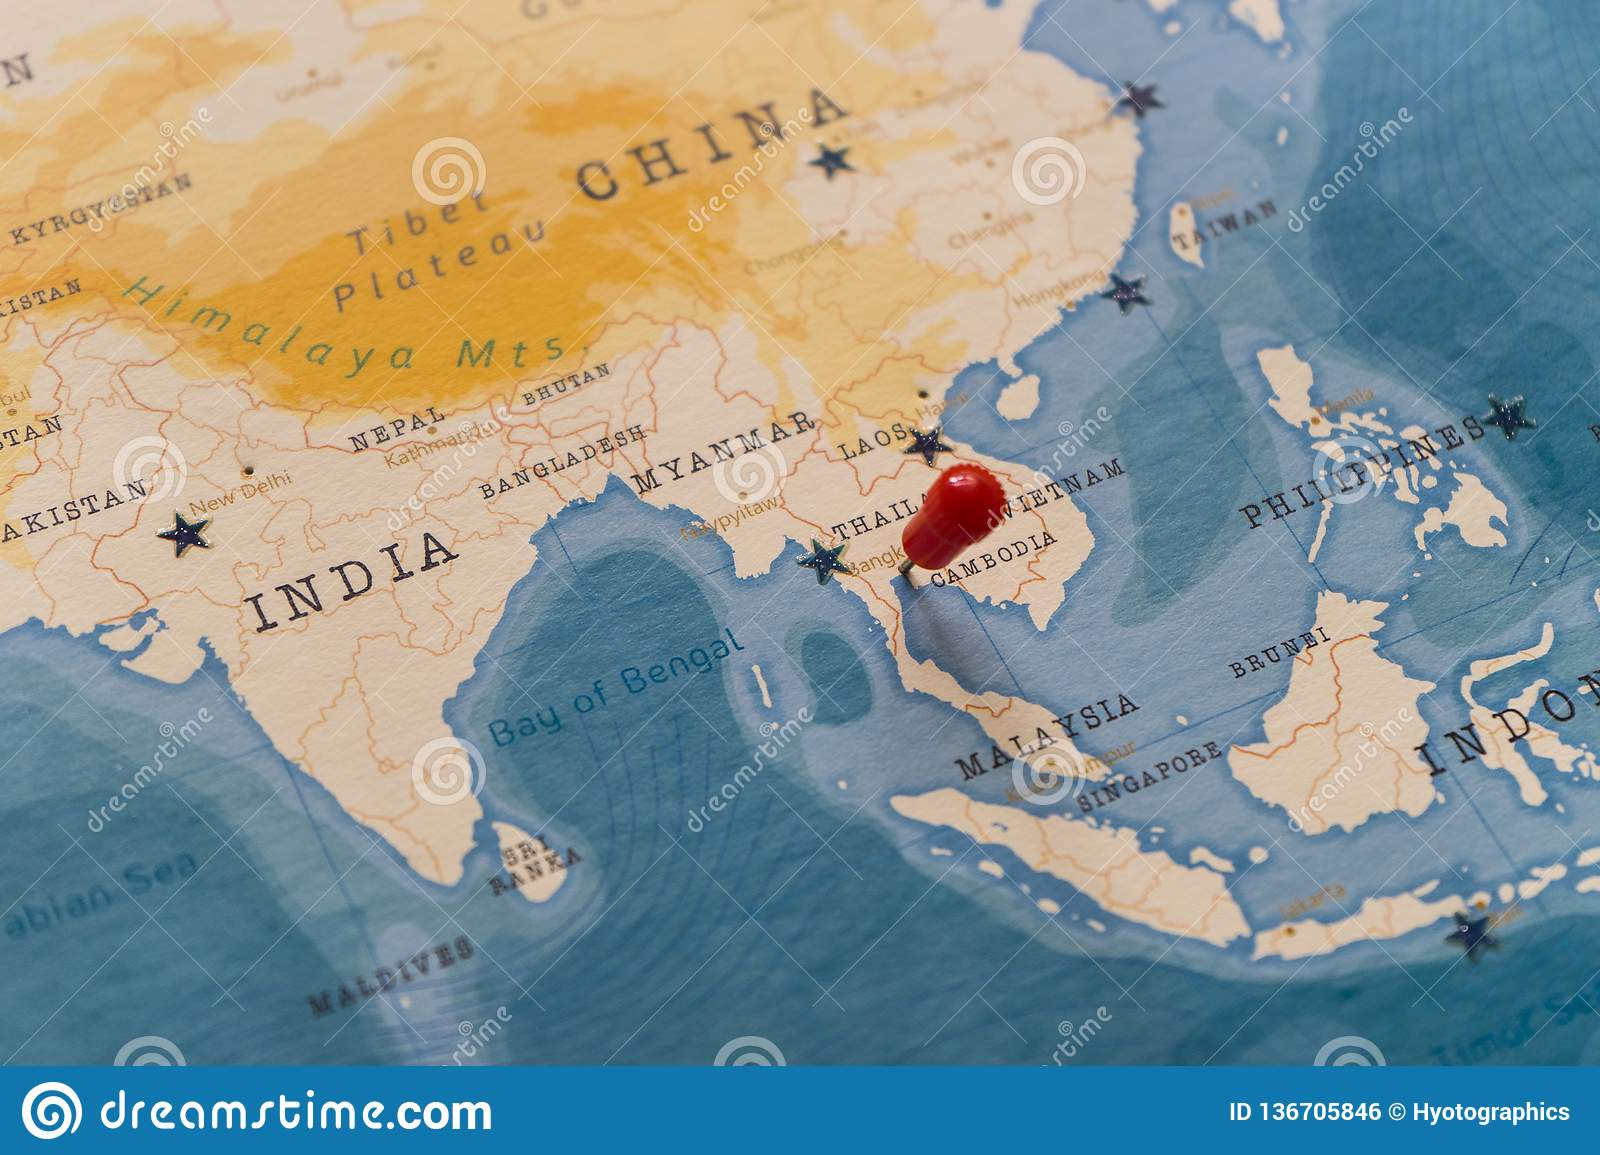 A Pin On Bangkok, Thailand In The World Map Stock Photo ...